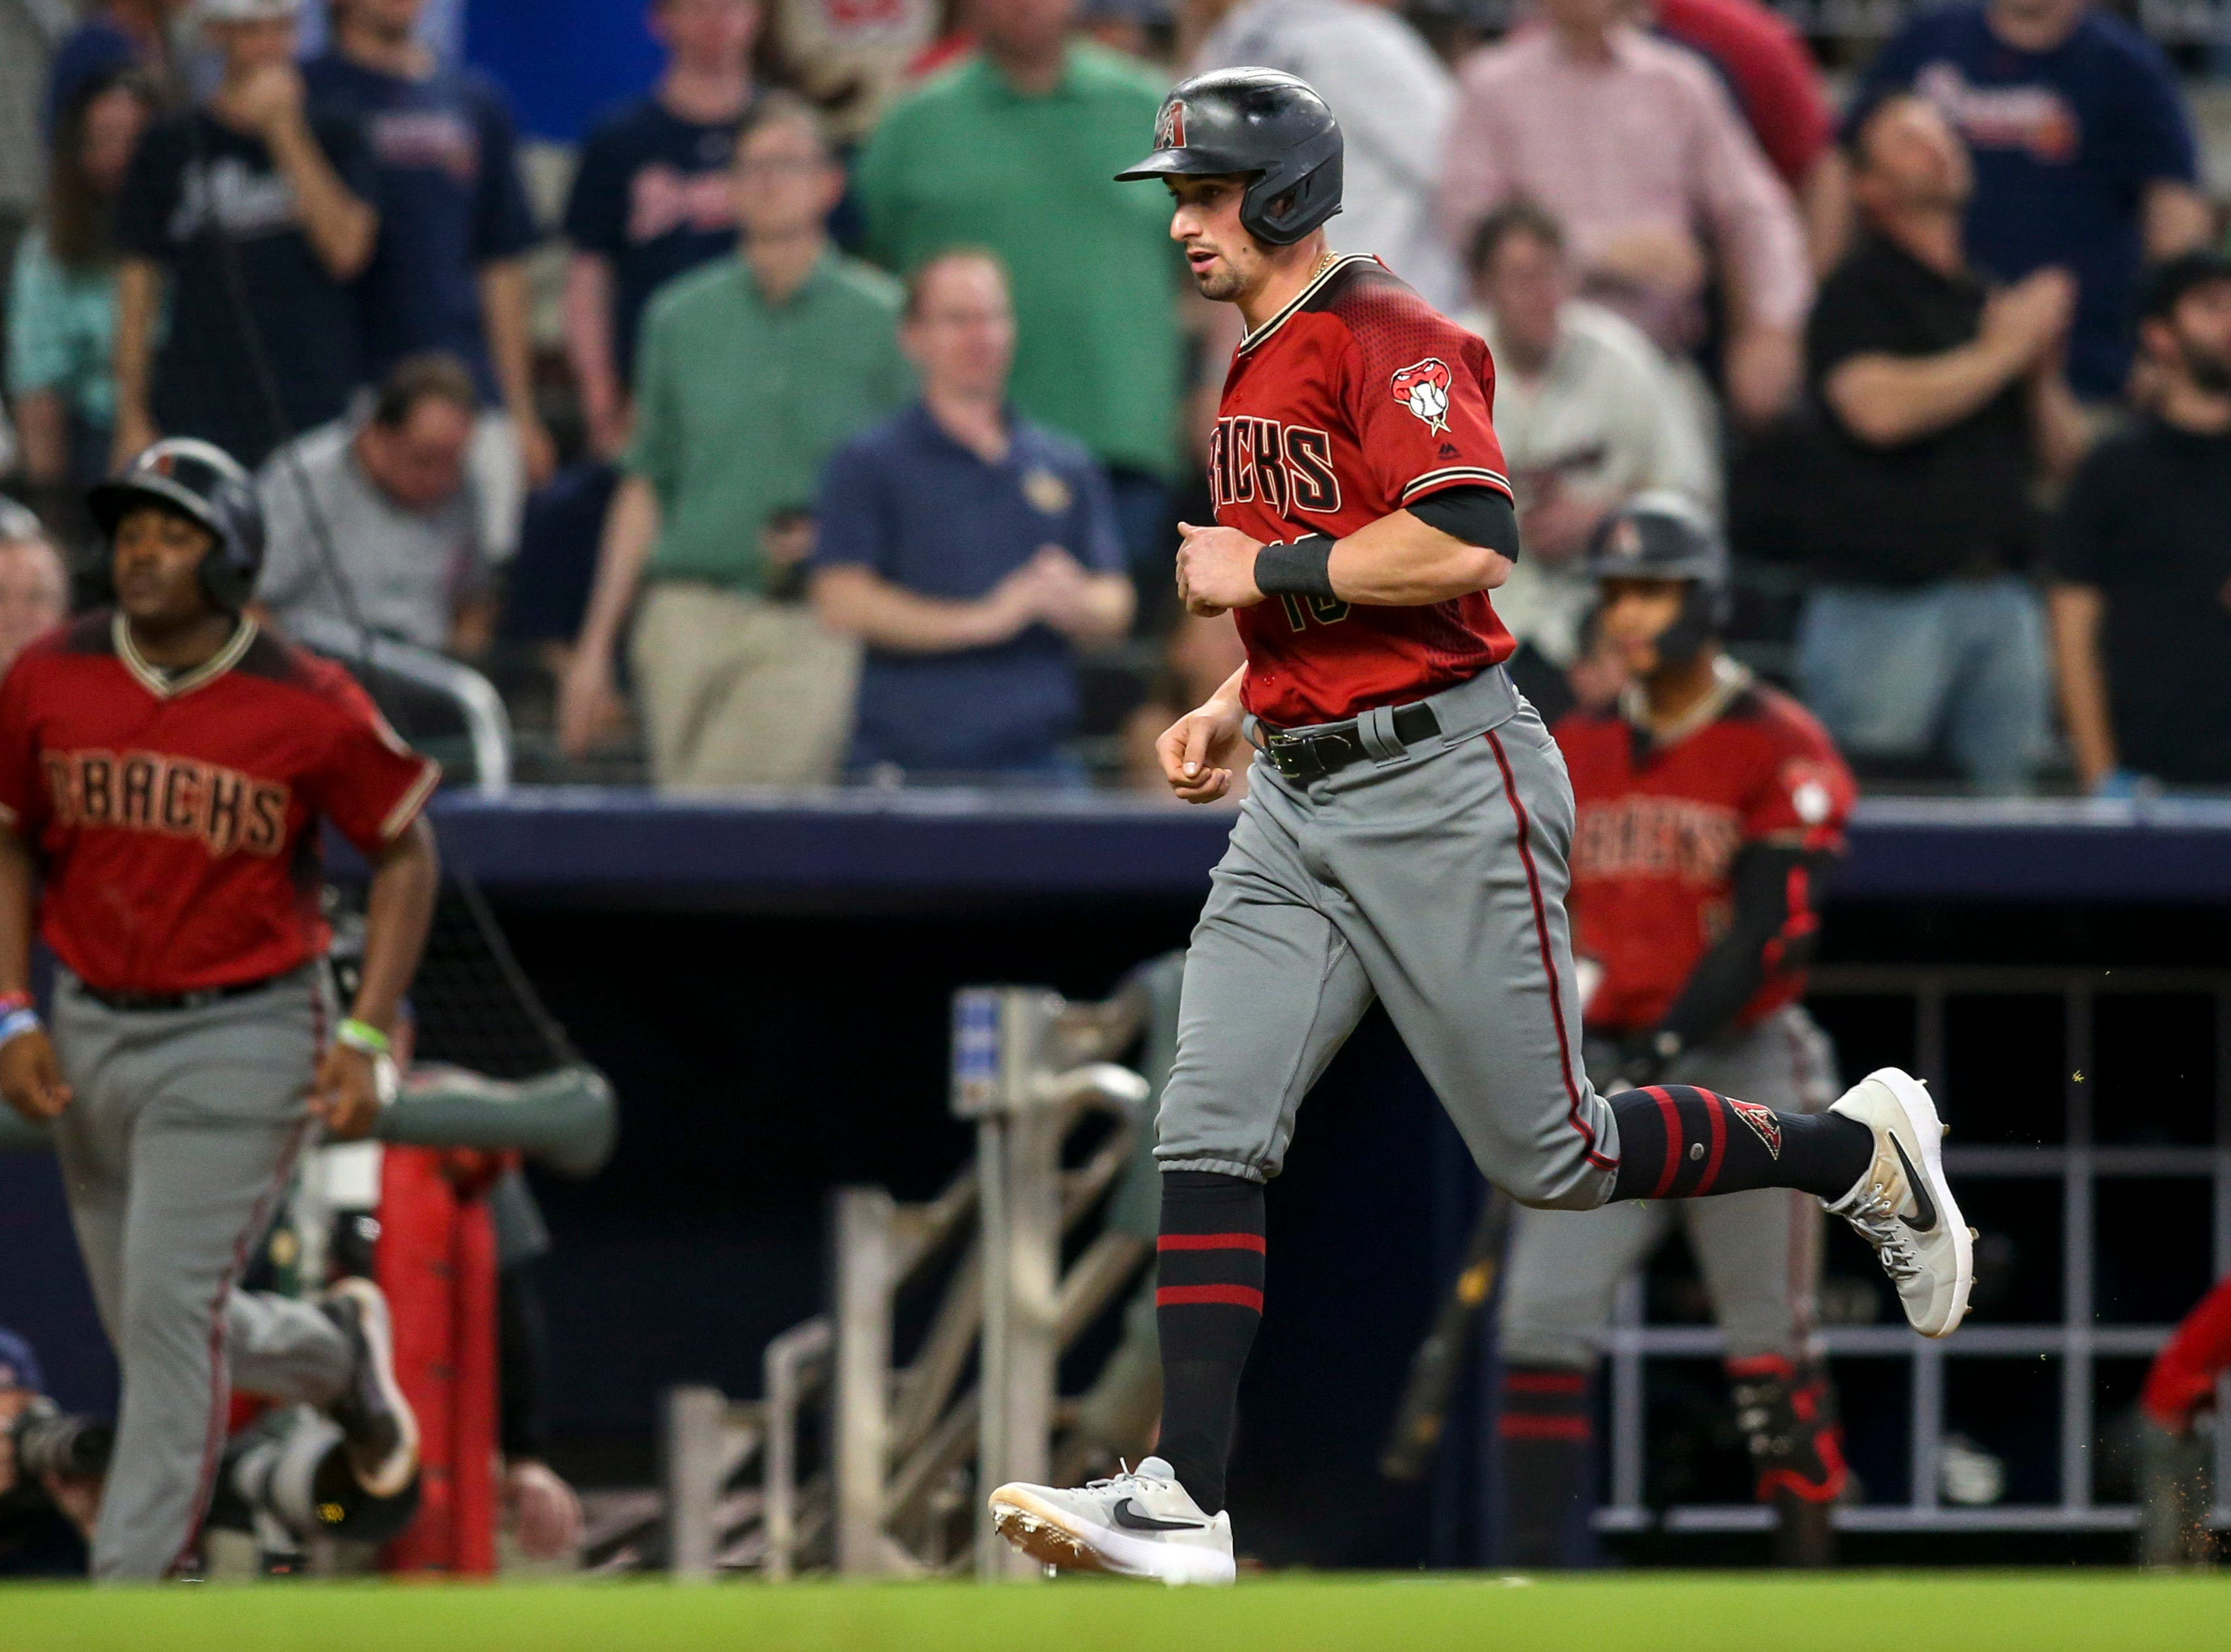 Apr 17, 2019; Atlanta, GA, USA; Arizona Diamondbacks center fielder Tim Locastro (16) scores on a walk against the Atlanta Braves in the tenth inning at SunTrust Park. Mandatory Credit: Brett Davis-USA TODAY Sports